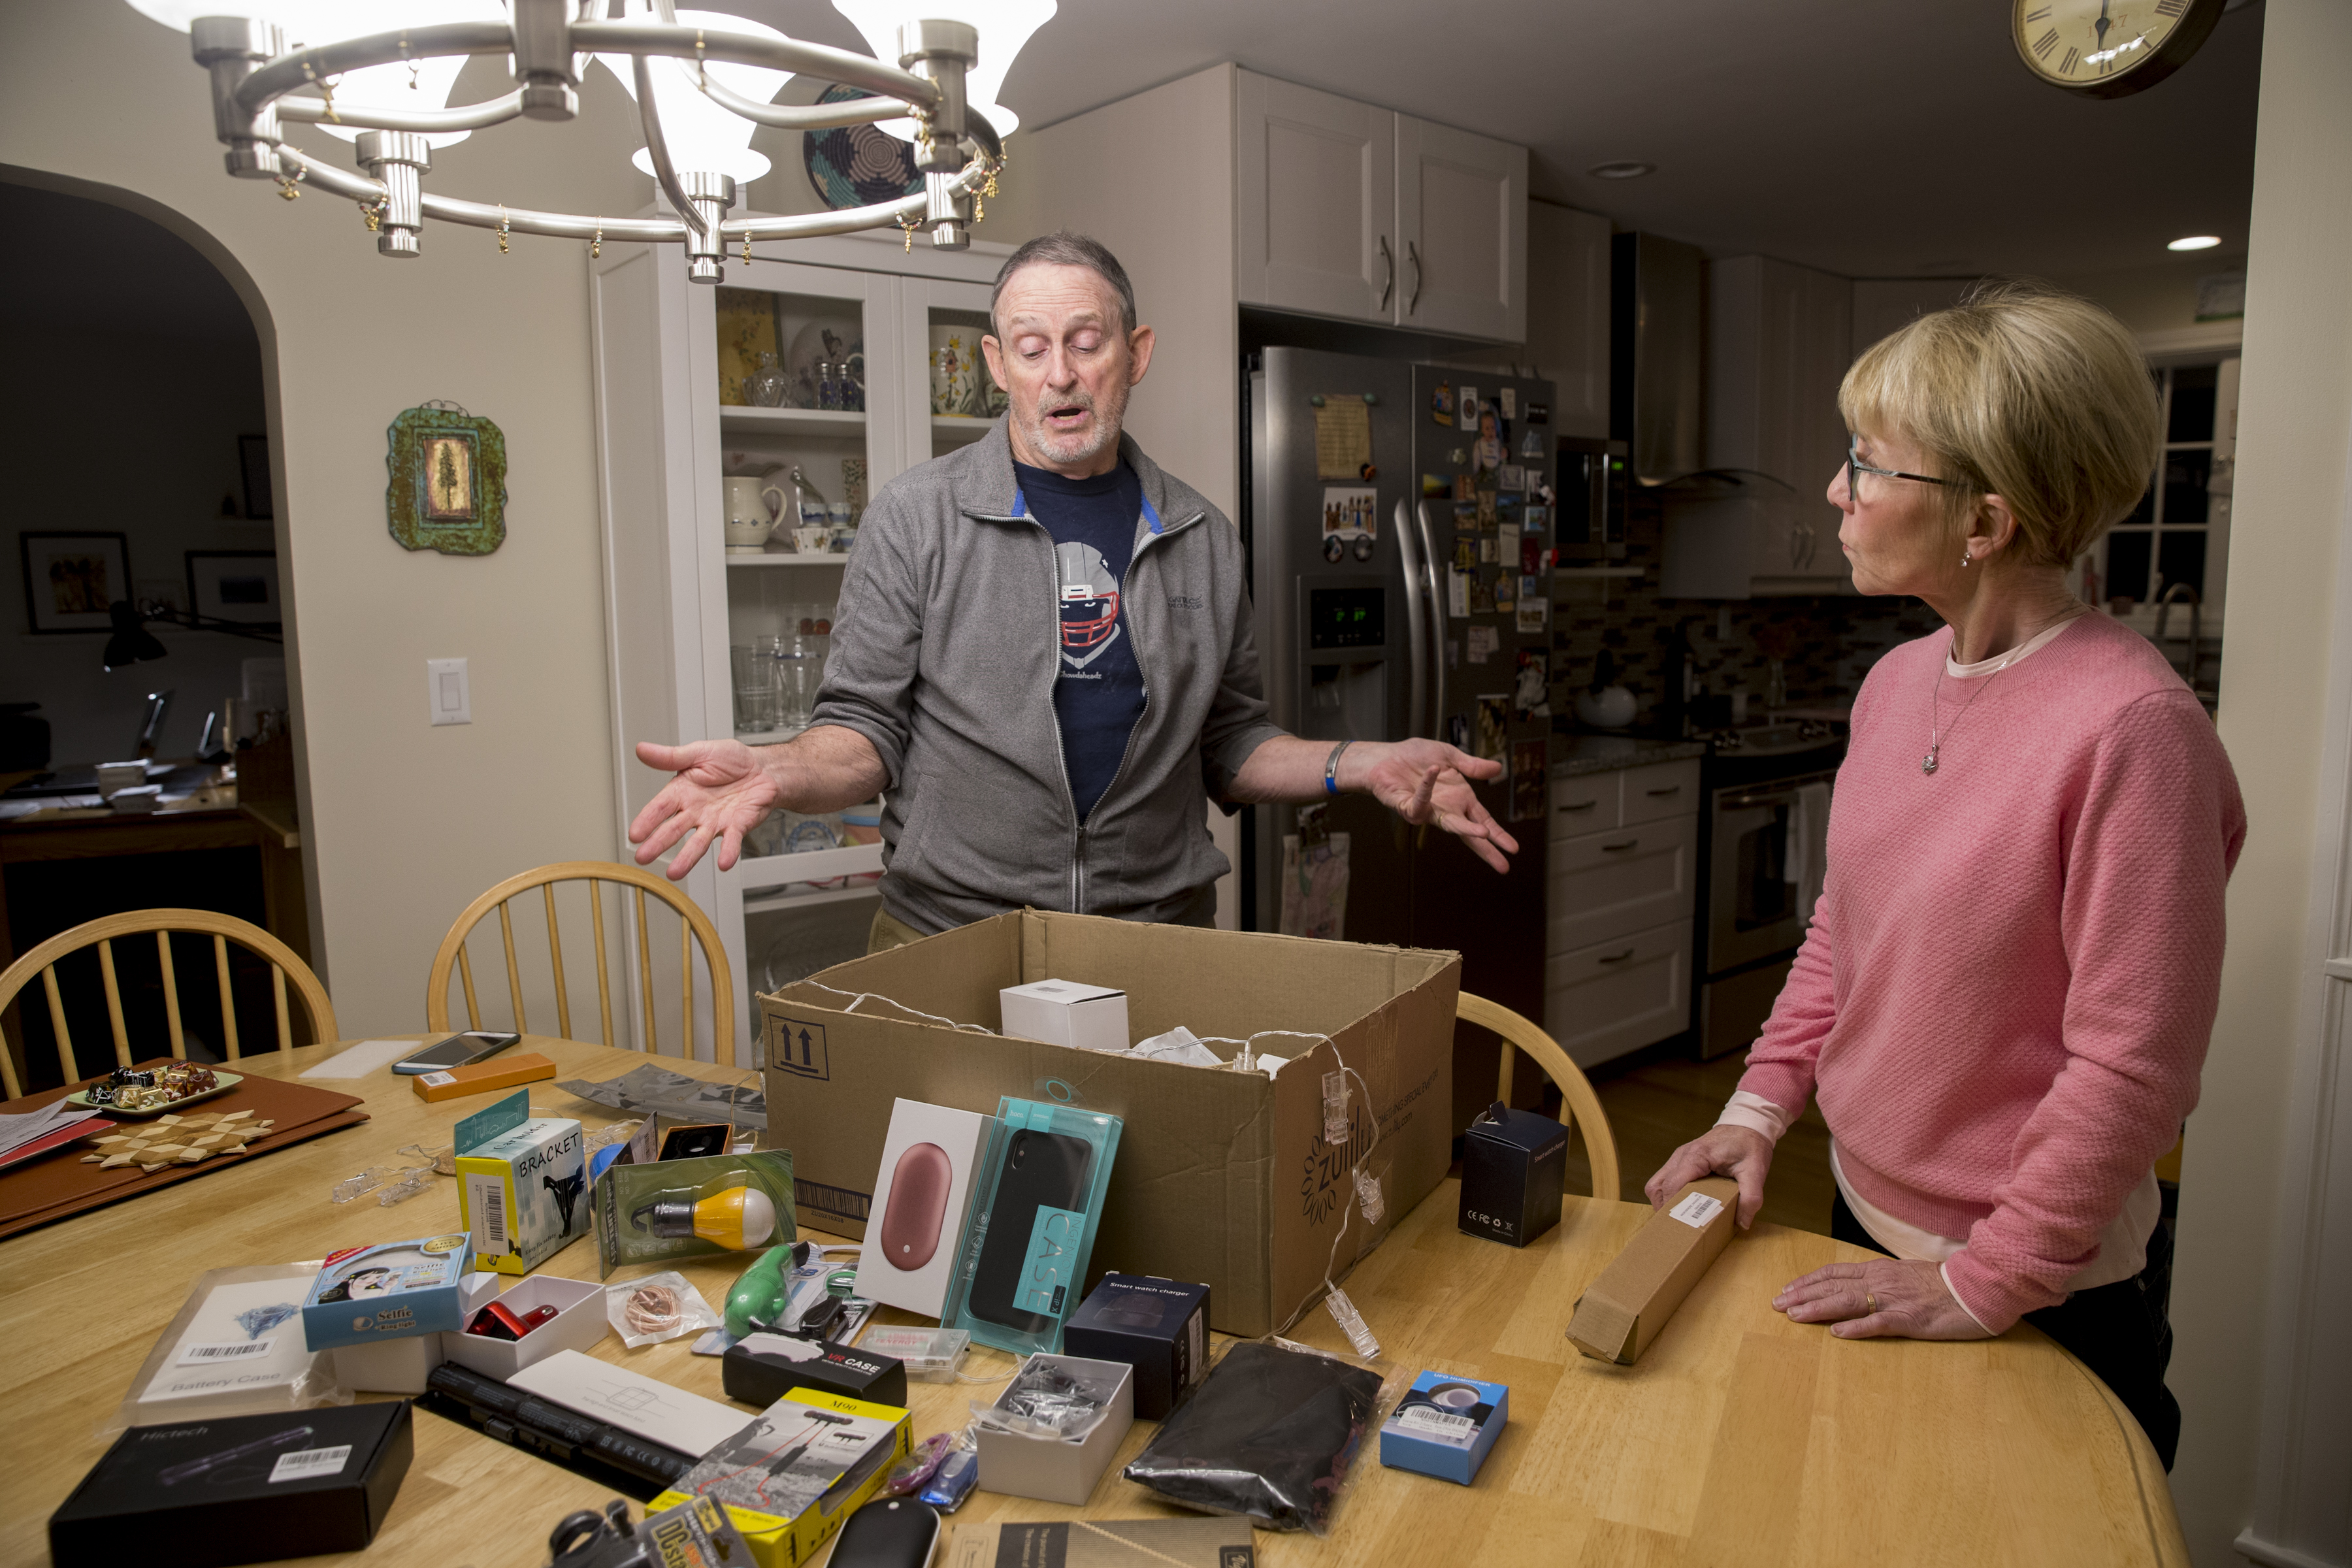 This couple keeps getting mystery packages from Amazon they didn't